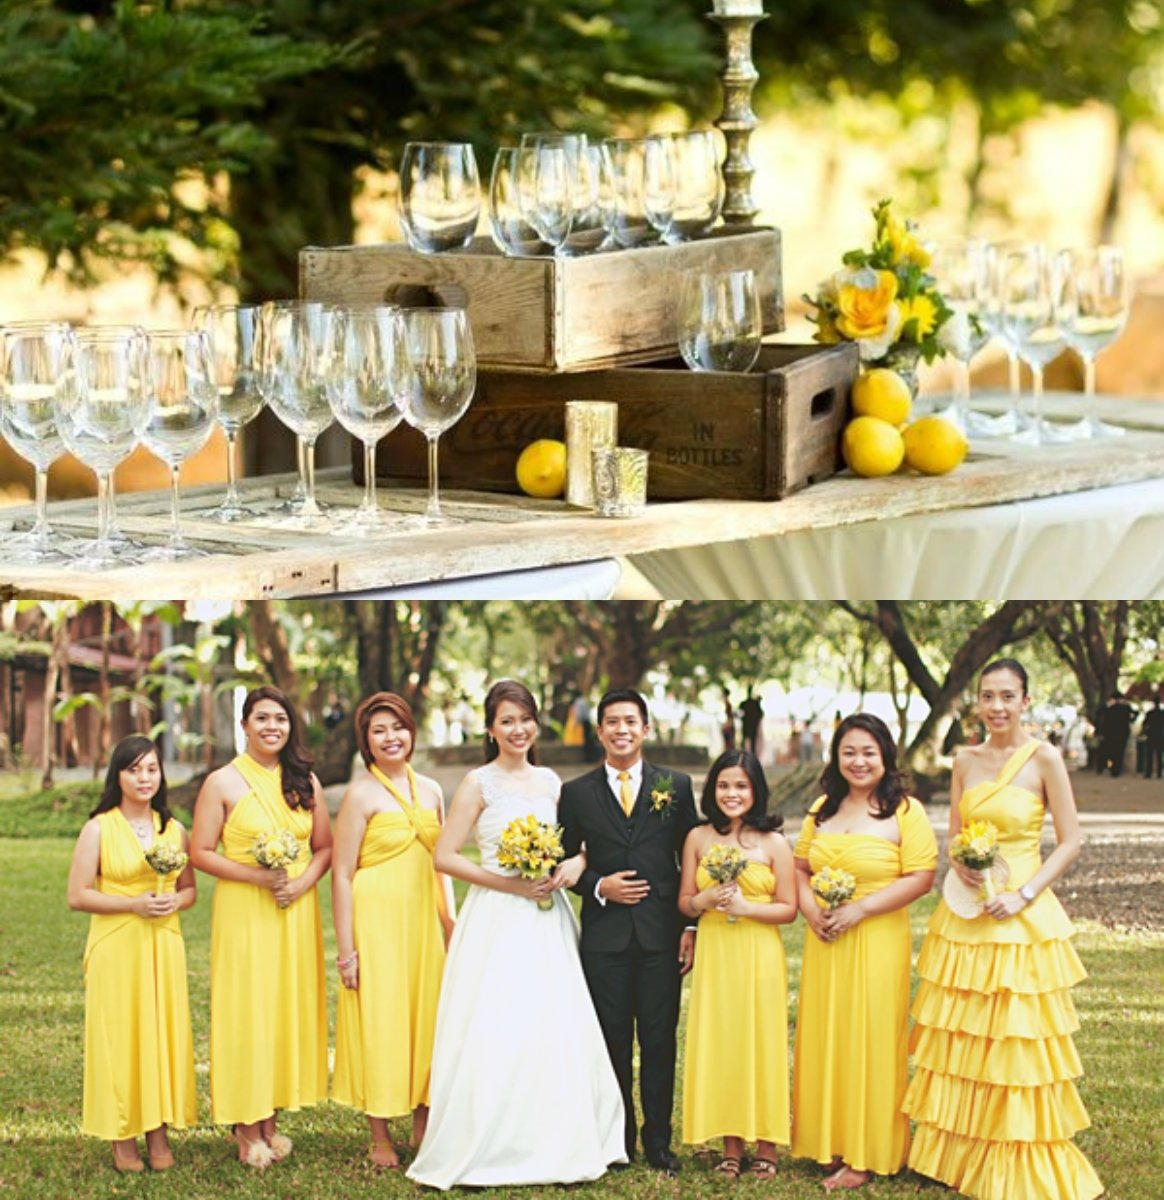 10 Attractive Wedding Ideas For Summer On A Budget awesome wedding ideas for summer on a budget gallery styles 2020